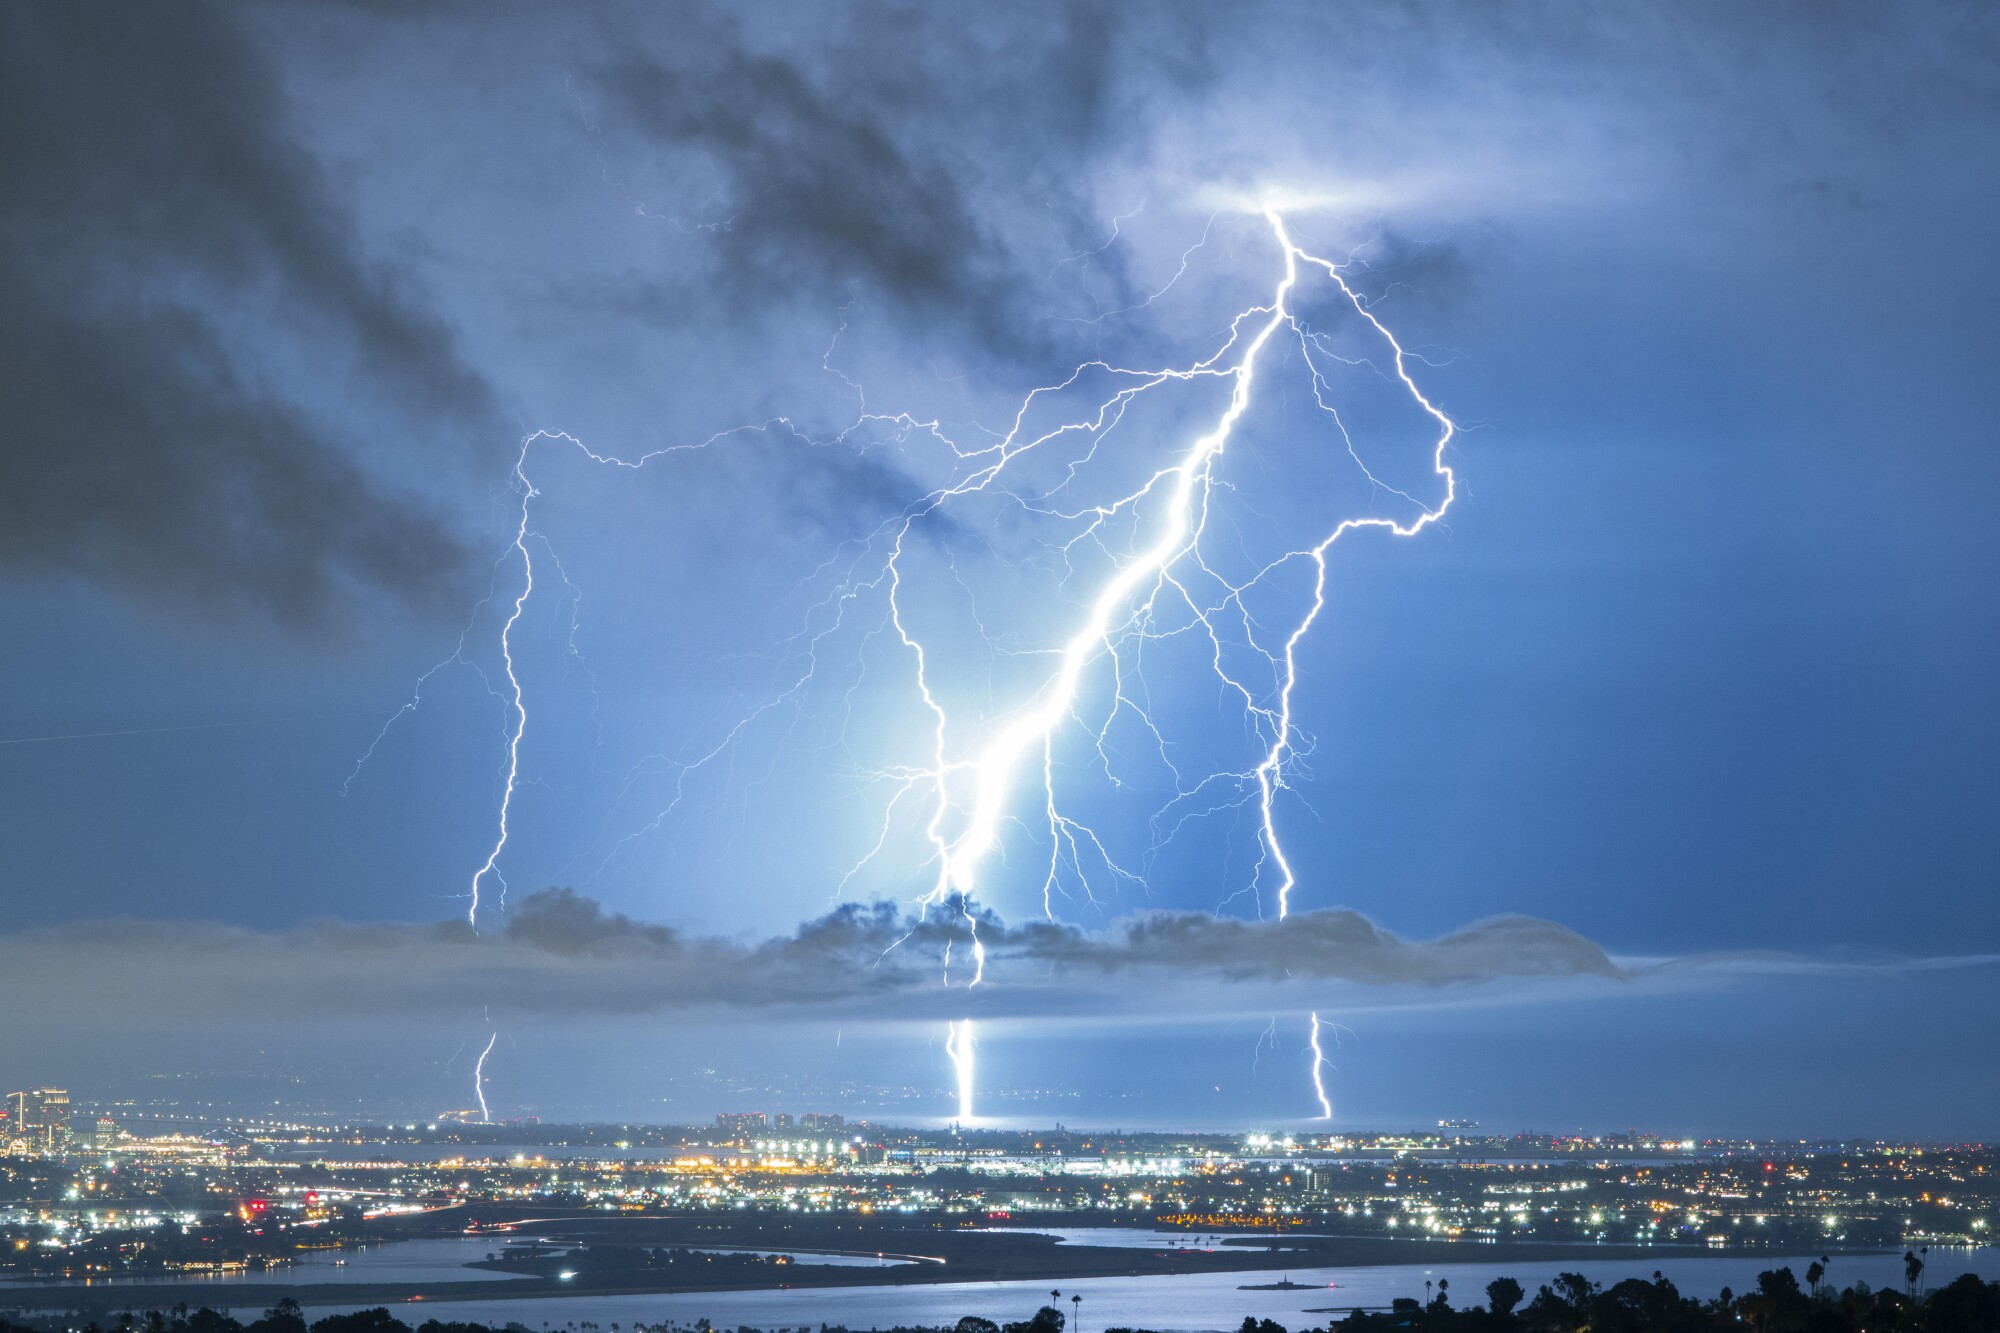 Lighting strikes the ground near Coronado as seen from Mt. Soledad during a lighting storm.